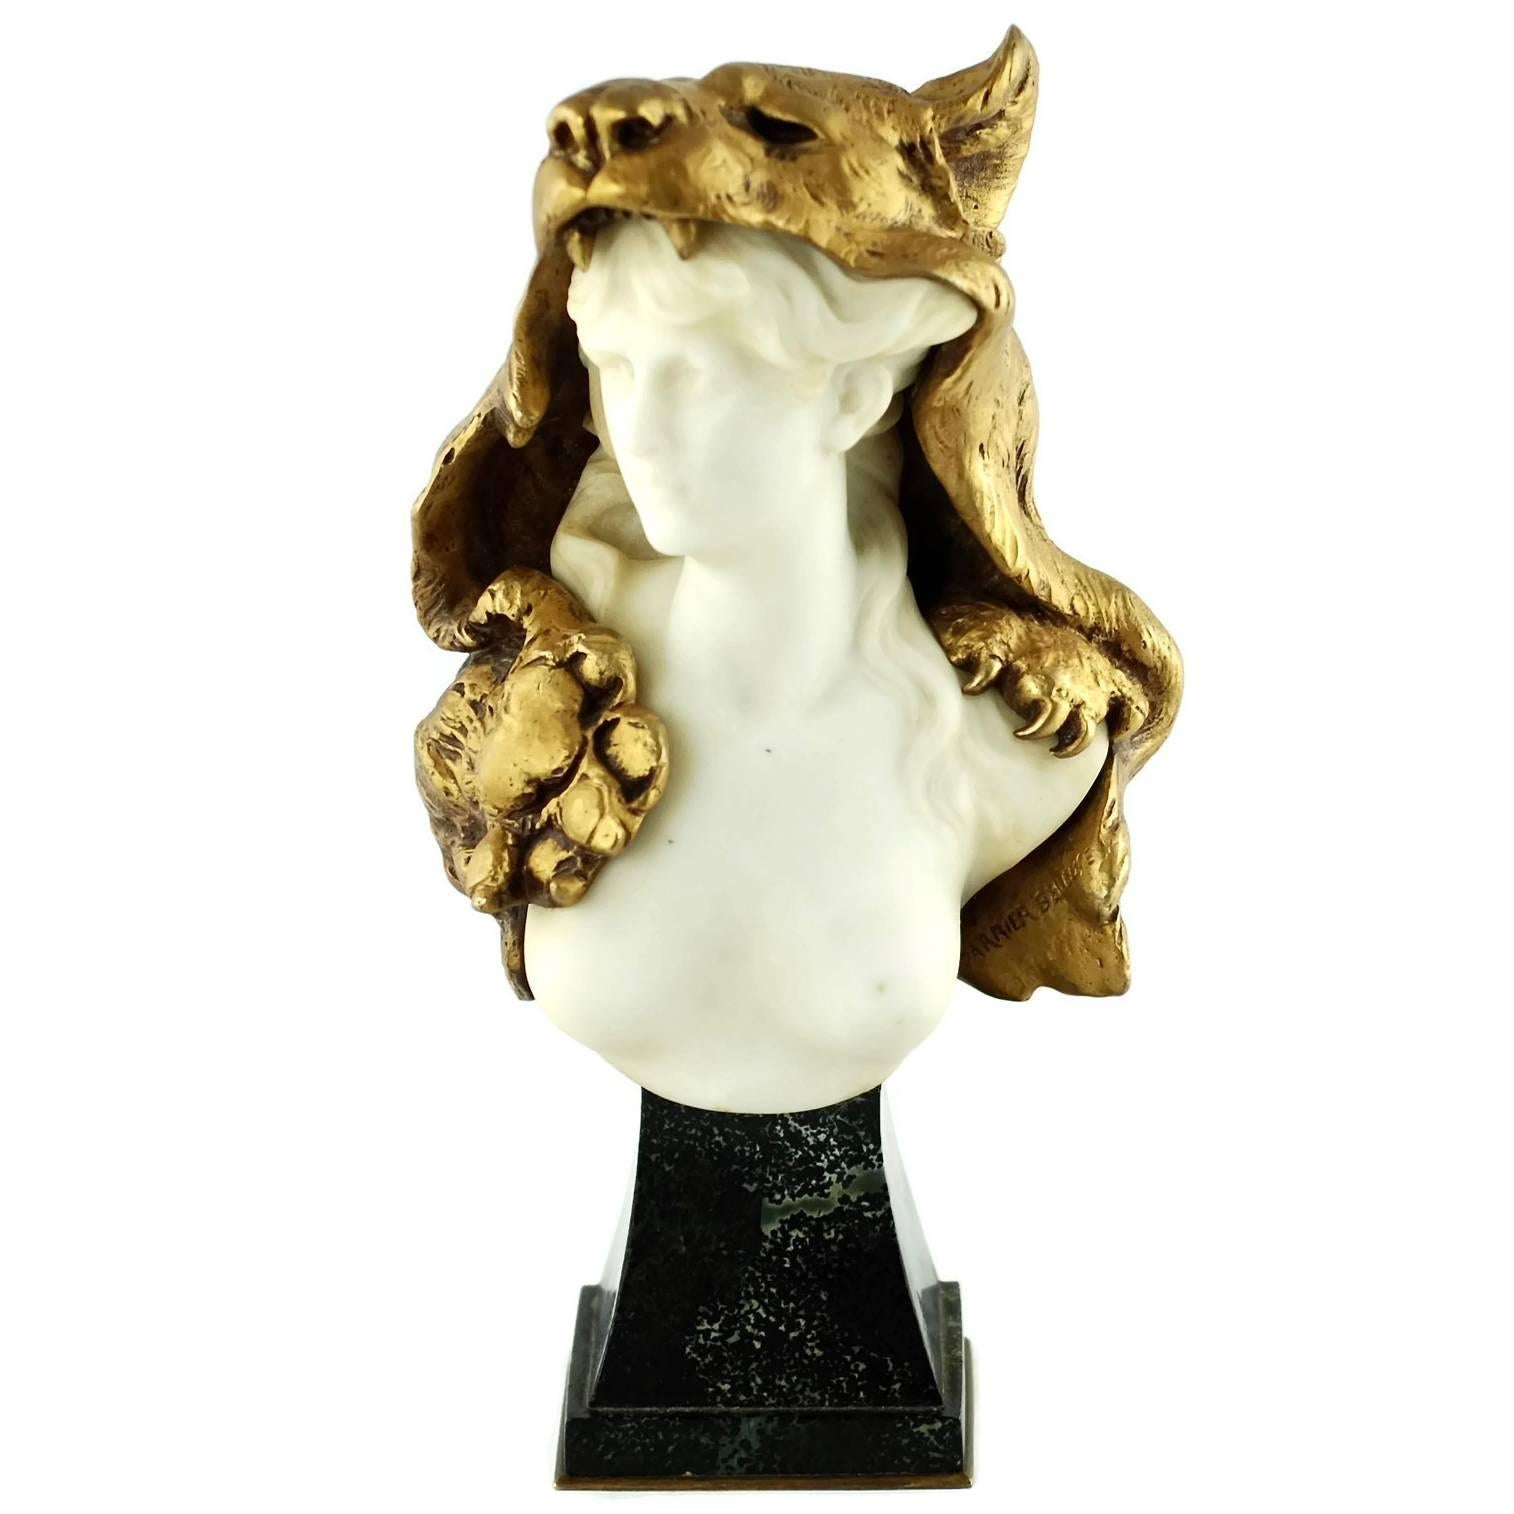 19th Century Louis-Robert Carrier-Belleuse Marble and Bronze Bust of Omphale